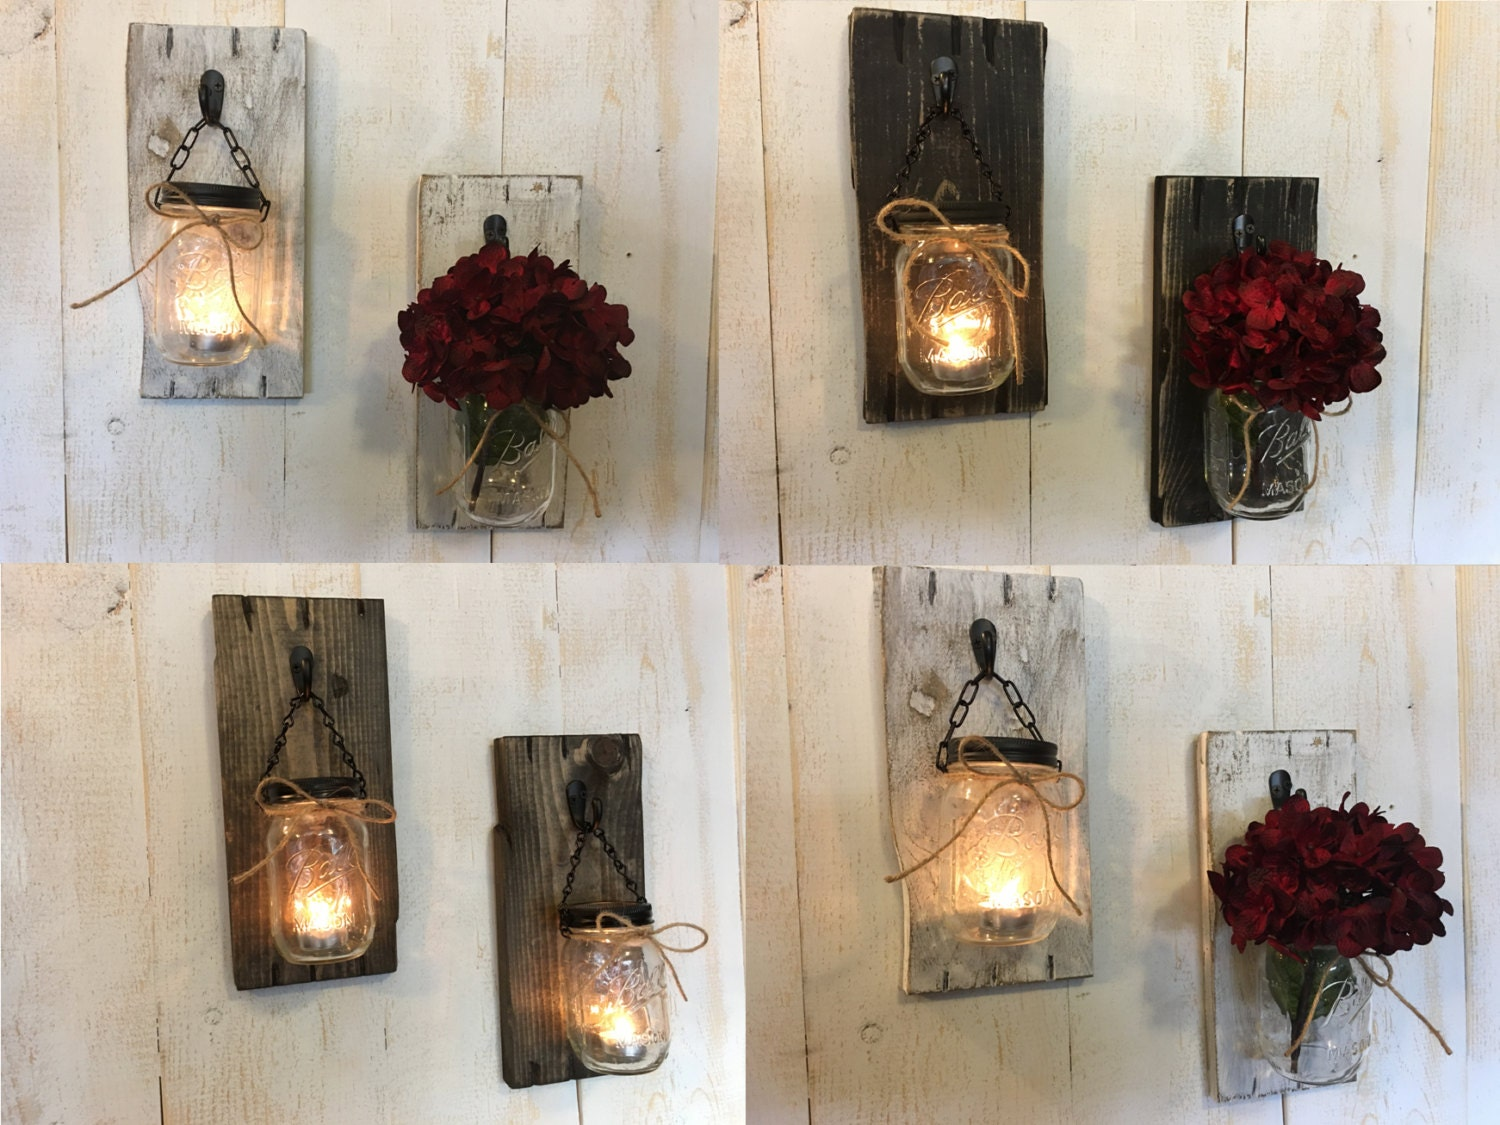 Wall sconces for candlesndle holders rustic candle holders candle holders rustic candle holders candles mason jar candles candle decor wall sconces candle sconces wood amipublicfo Image collections